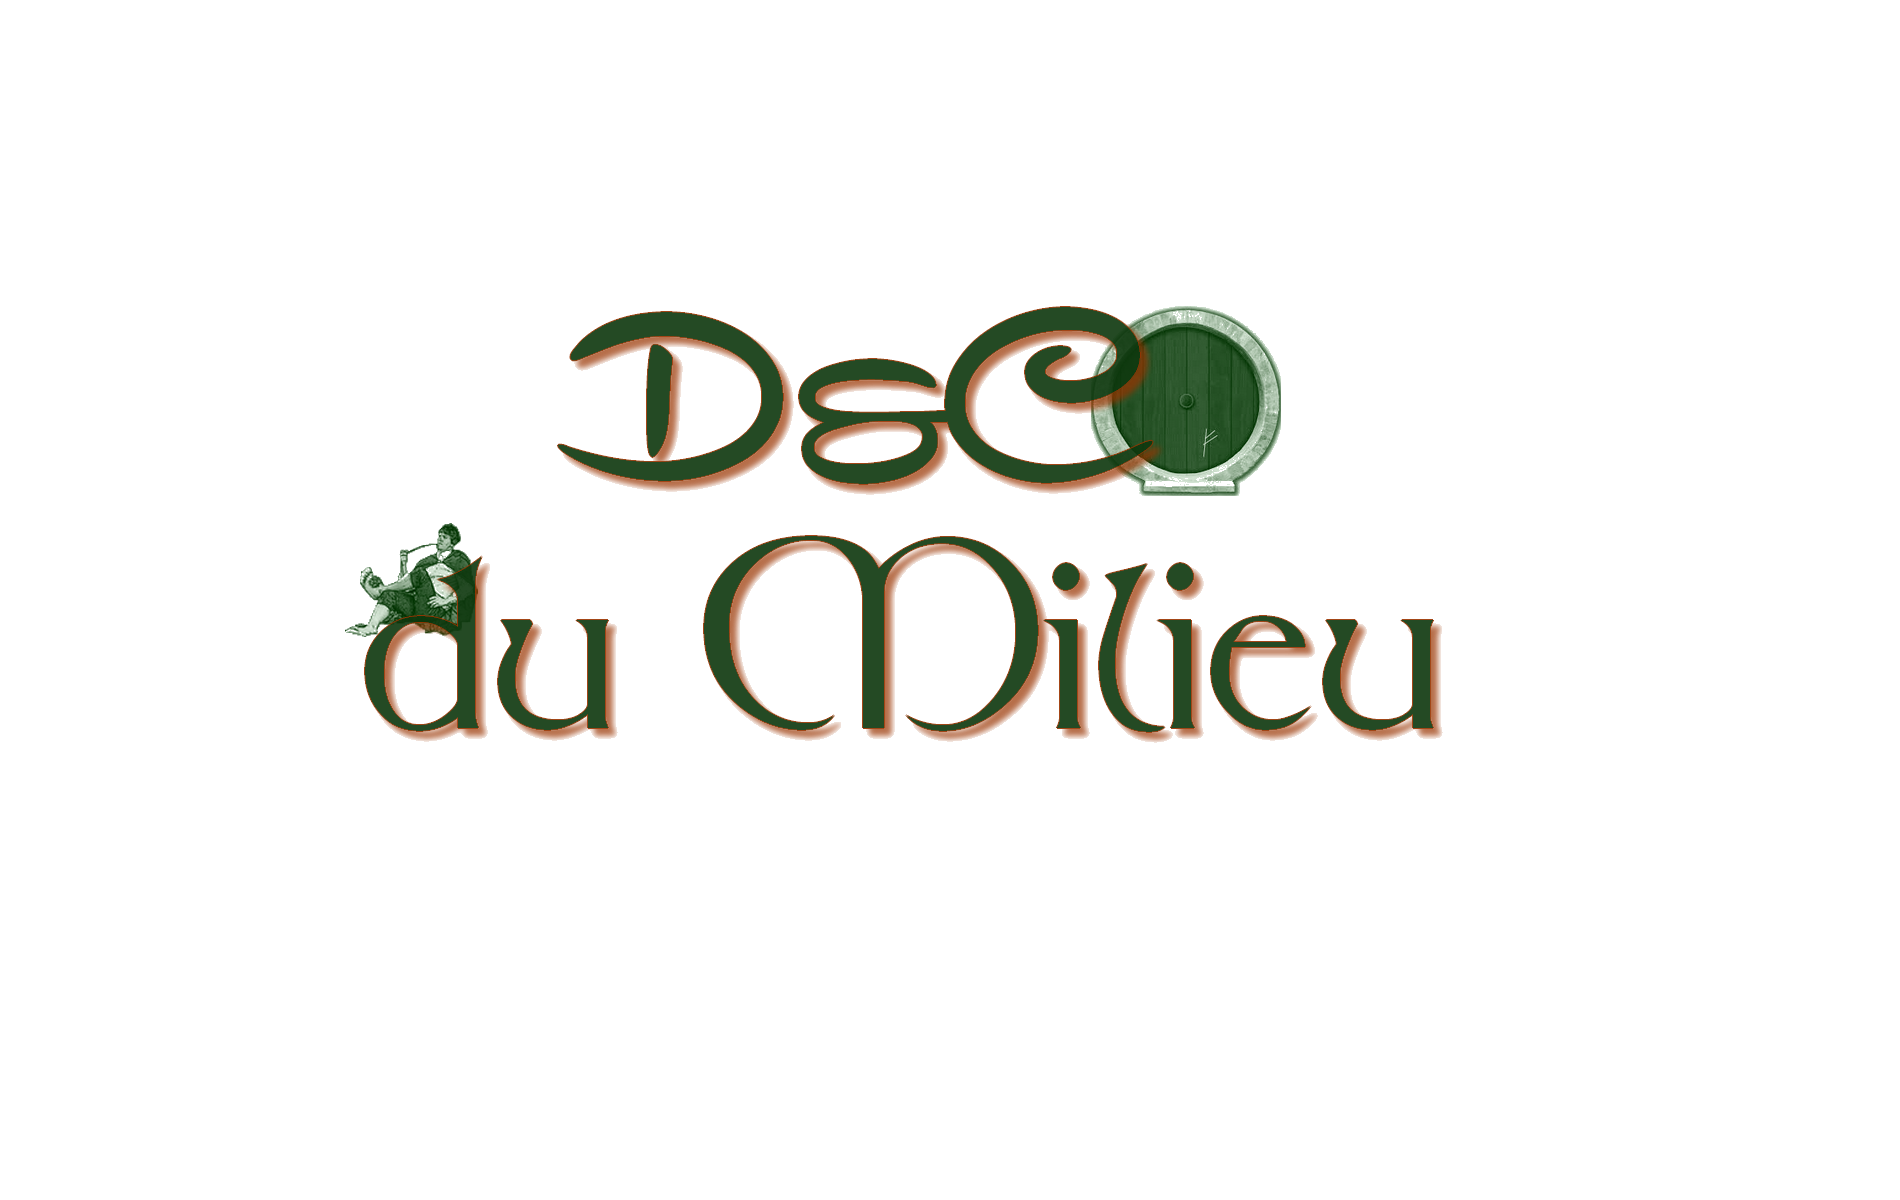 dco logo4 d co du milieu. Black Bedroom Furniture Sets. Home Design Ideas